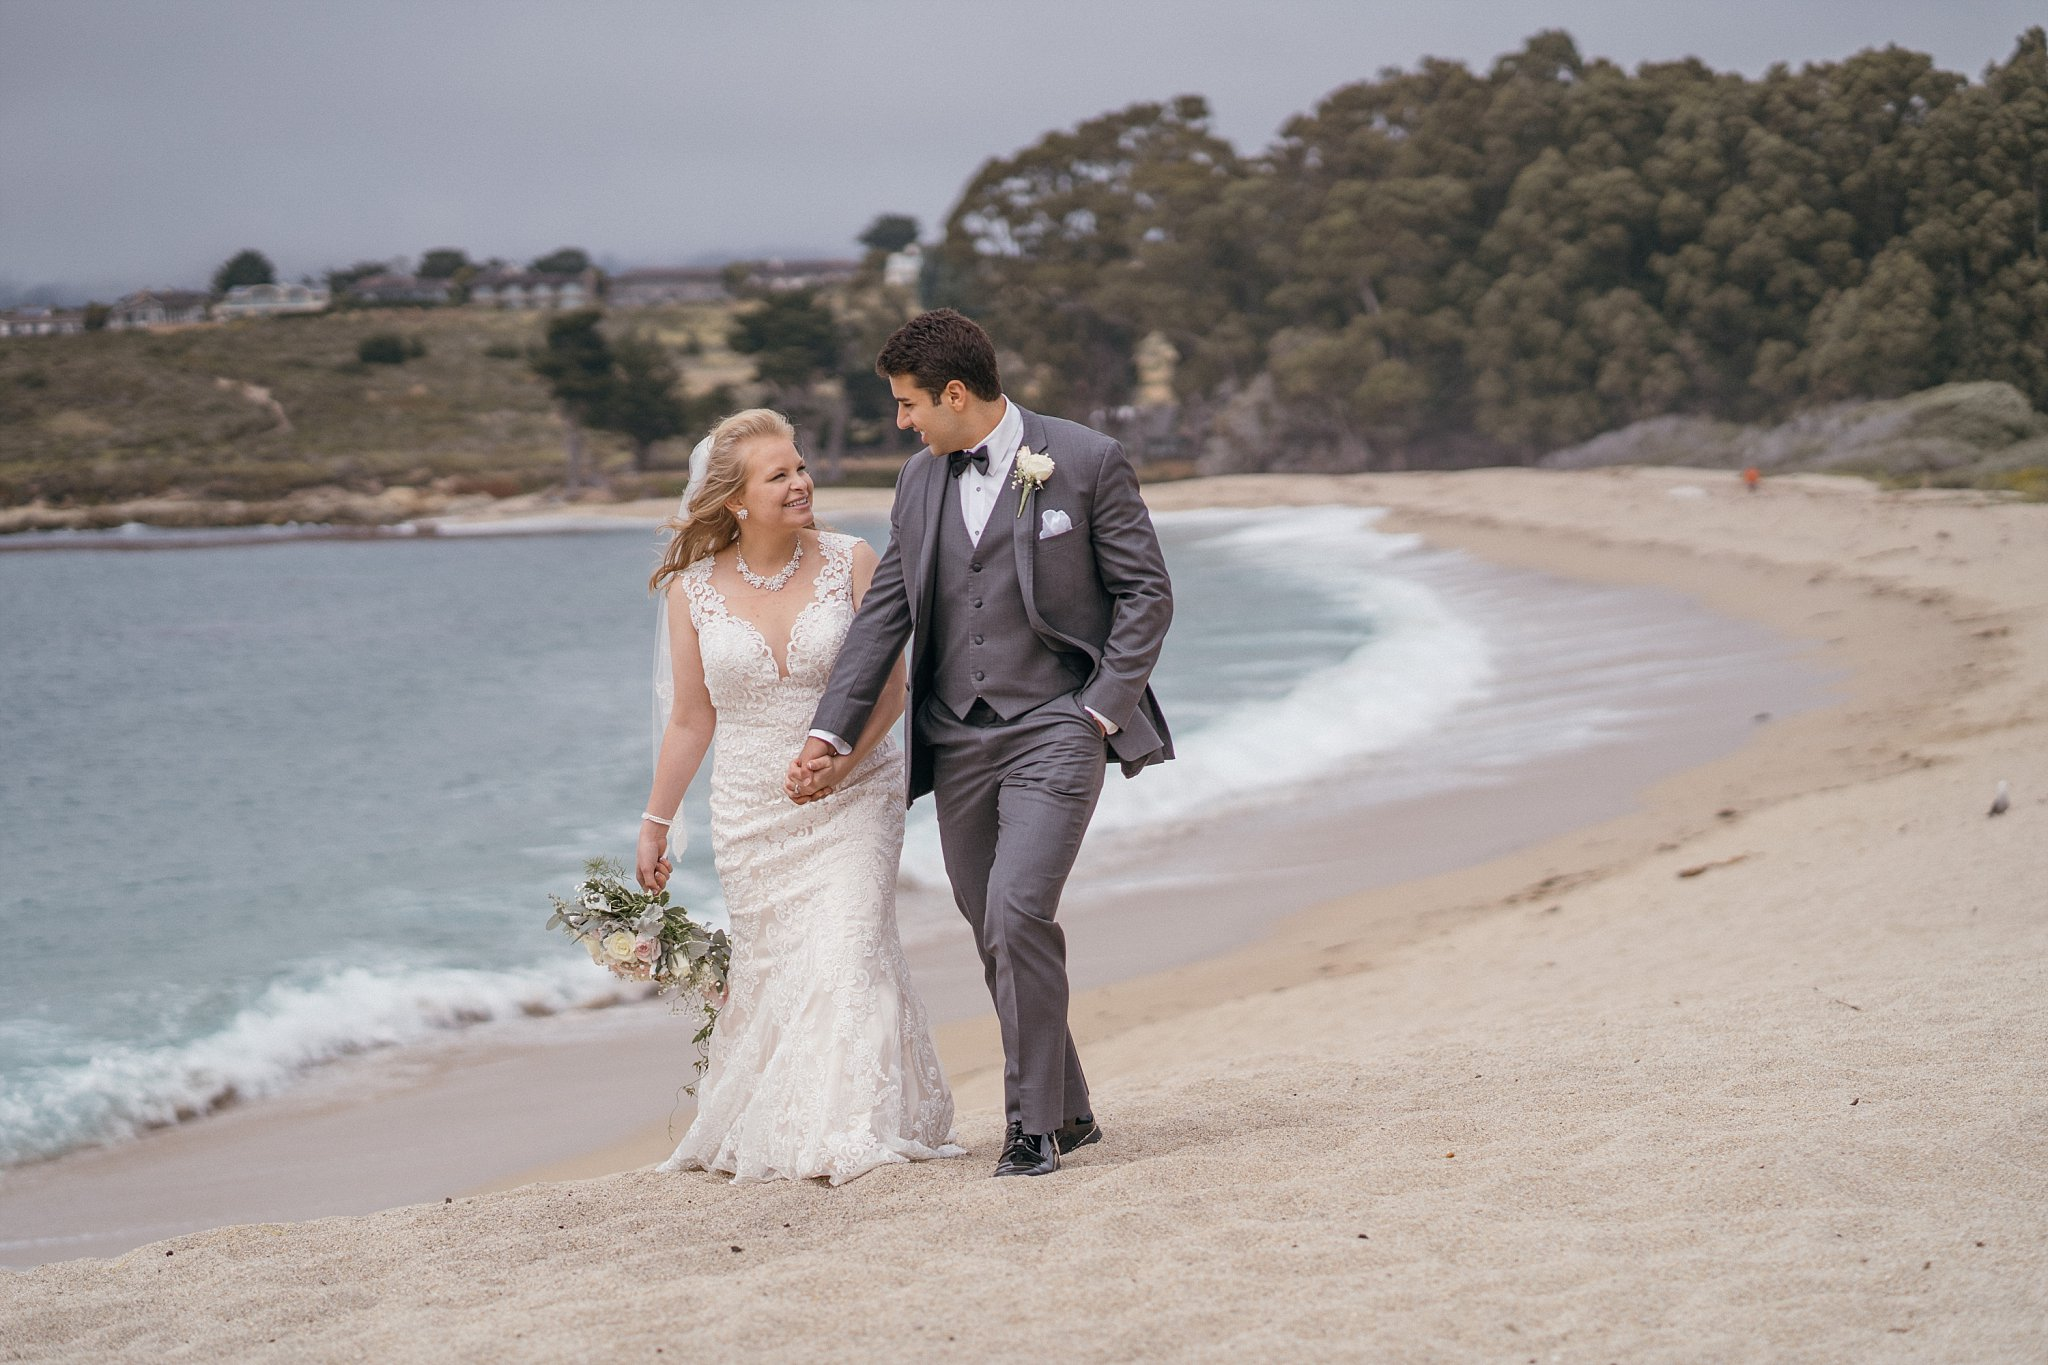 monterey-wedding-photographer-pebble-beach-church-in-the-forest-wedding-bride-groom-morgan-anthony_0033.jpg